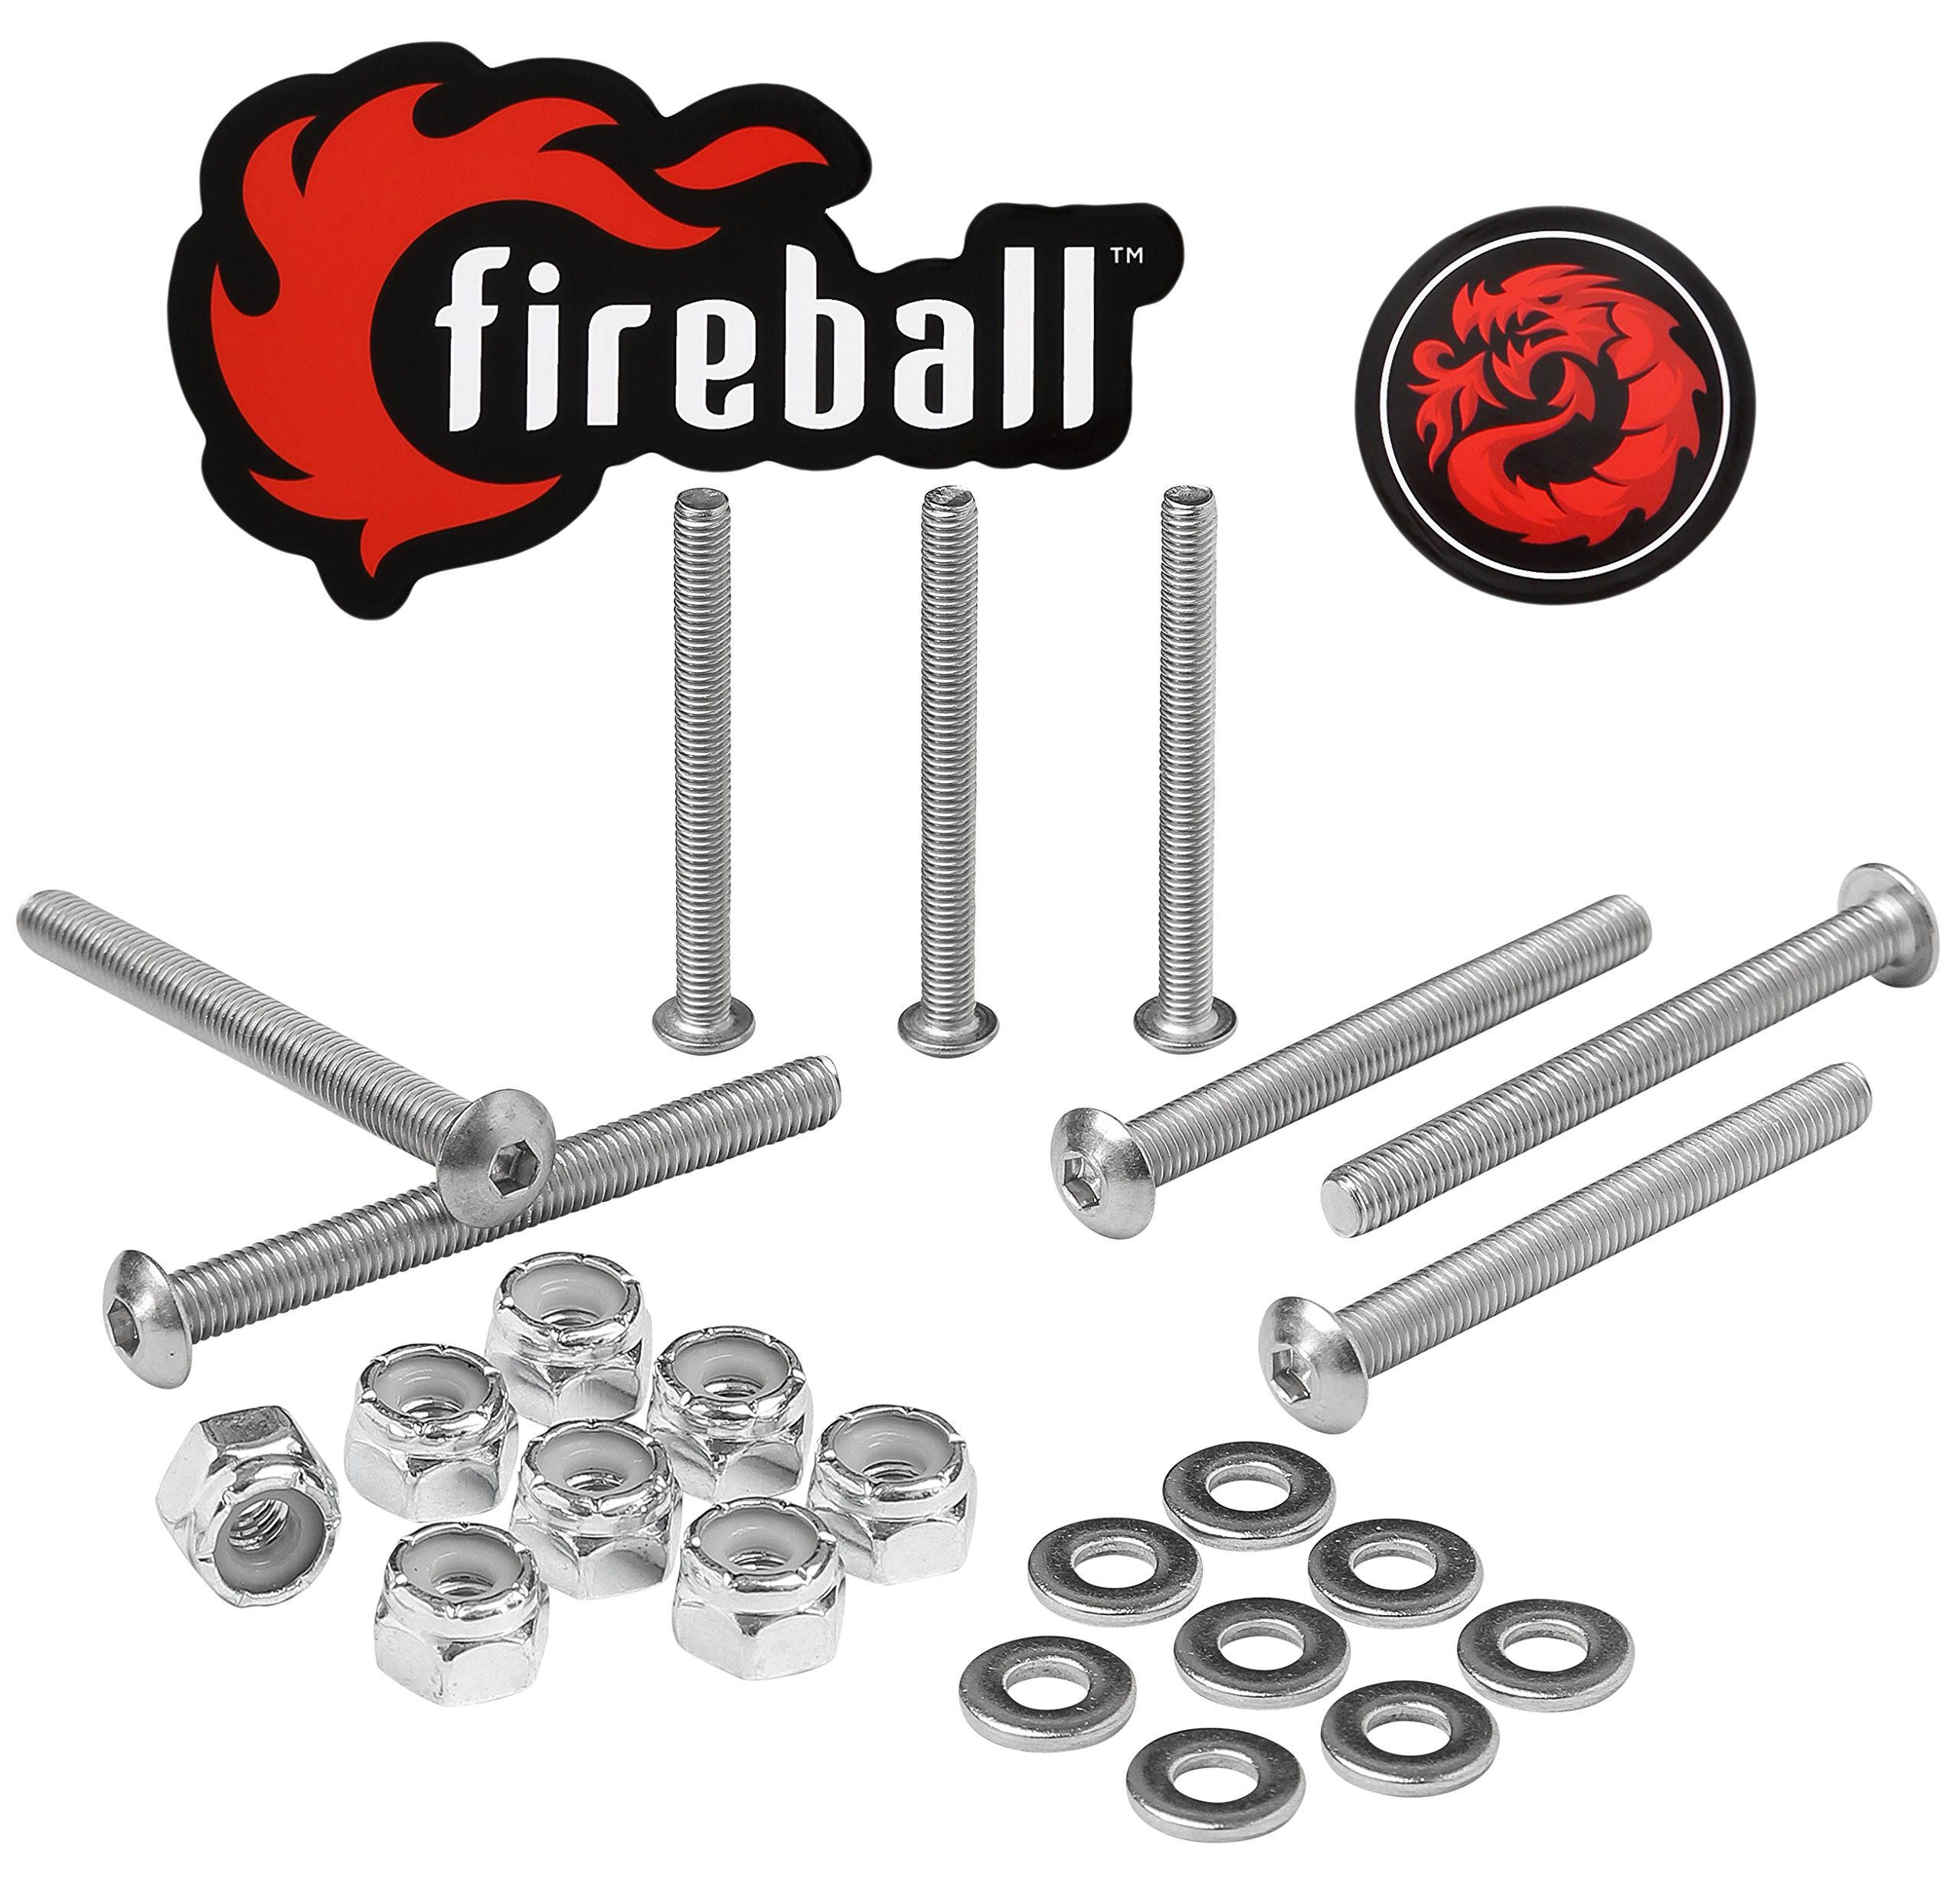 Fireball Dragon Stainless Steel Skateboard Hardware Set (Button Allen, 2.0'') by Fireball (Image #1)